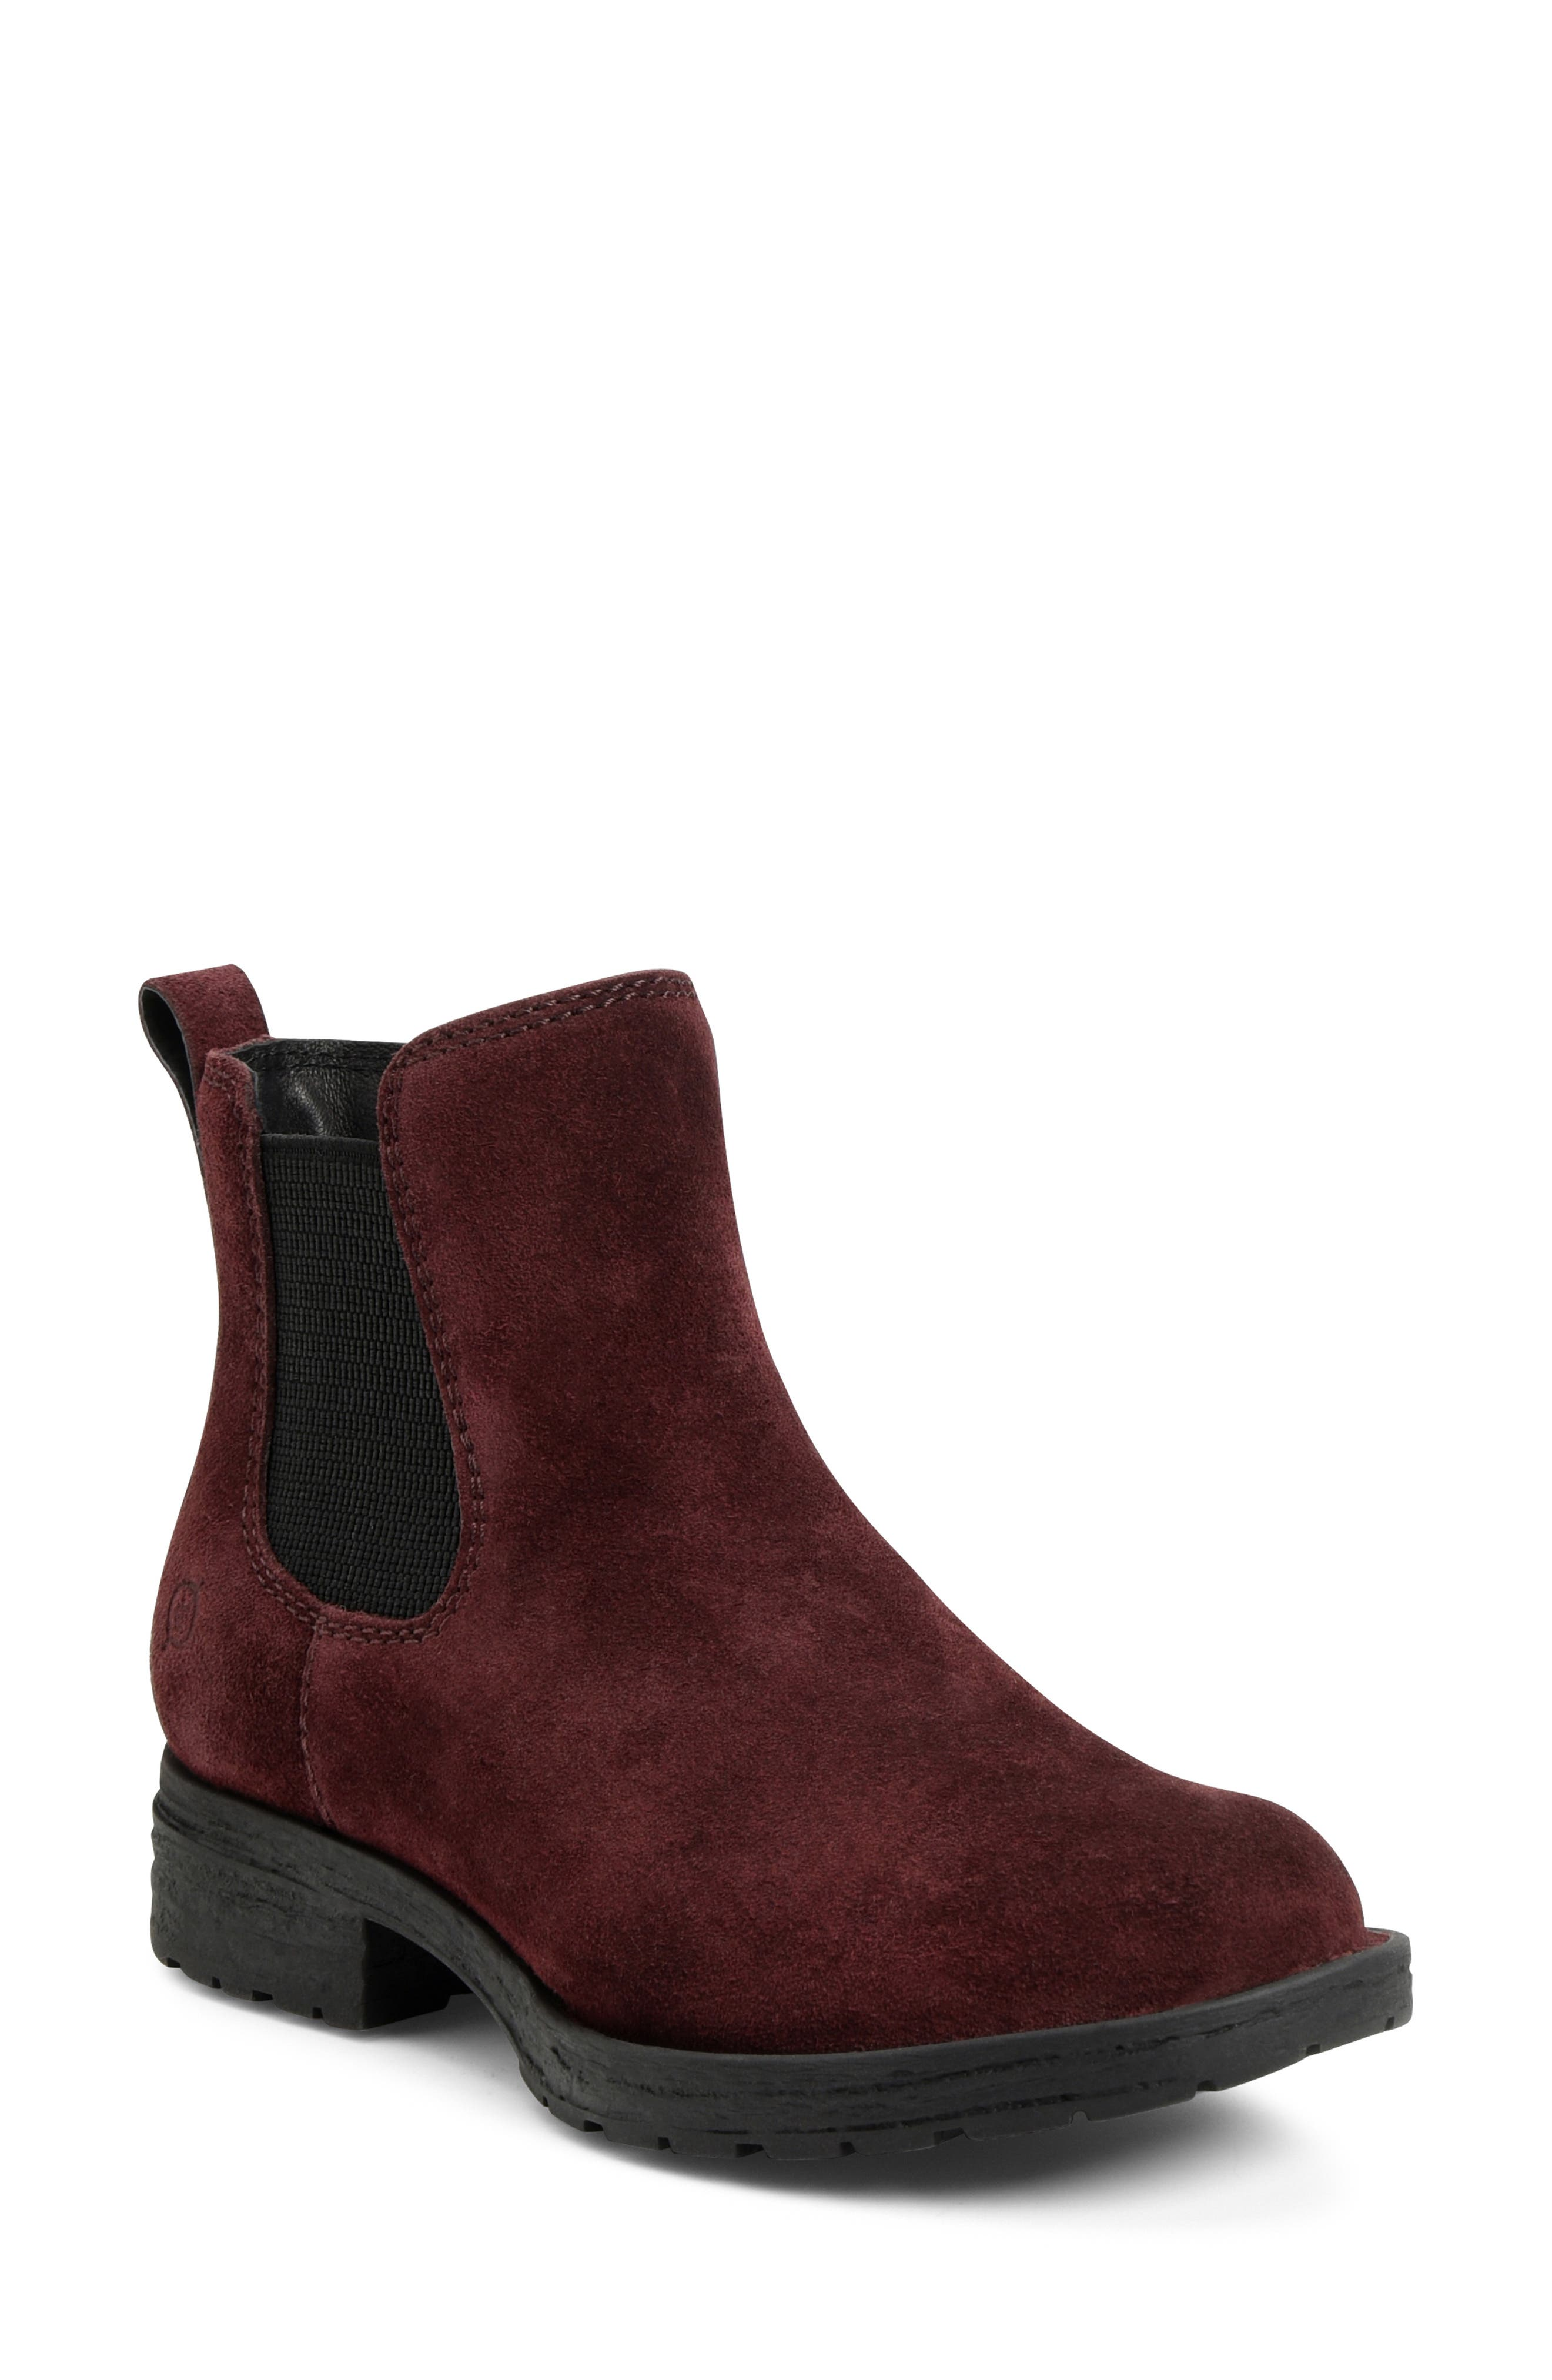 Ladies Ankle boots Chelsea Wine Burgundy Suede New Casual Girls